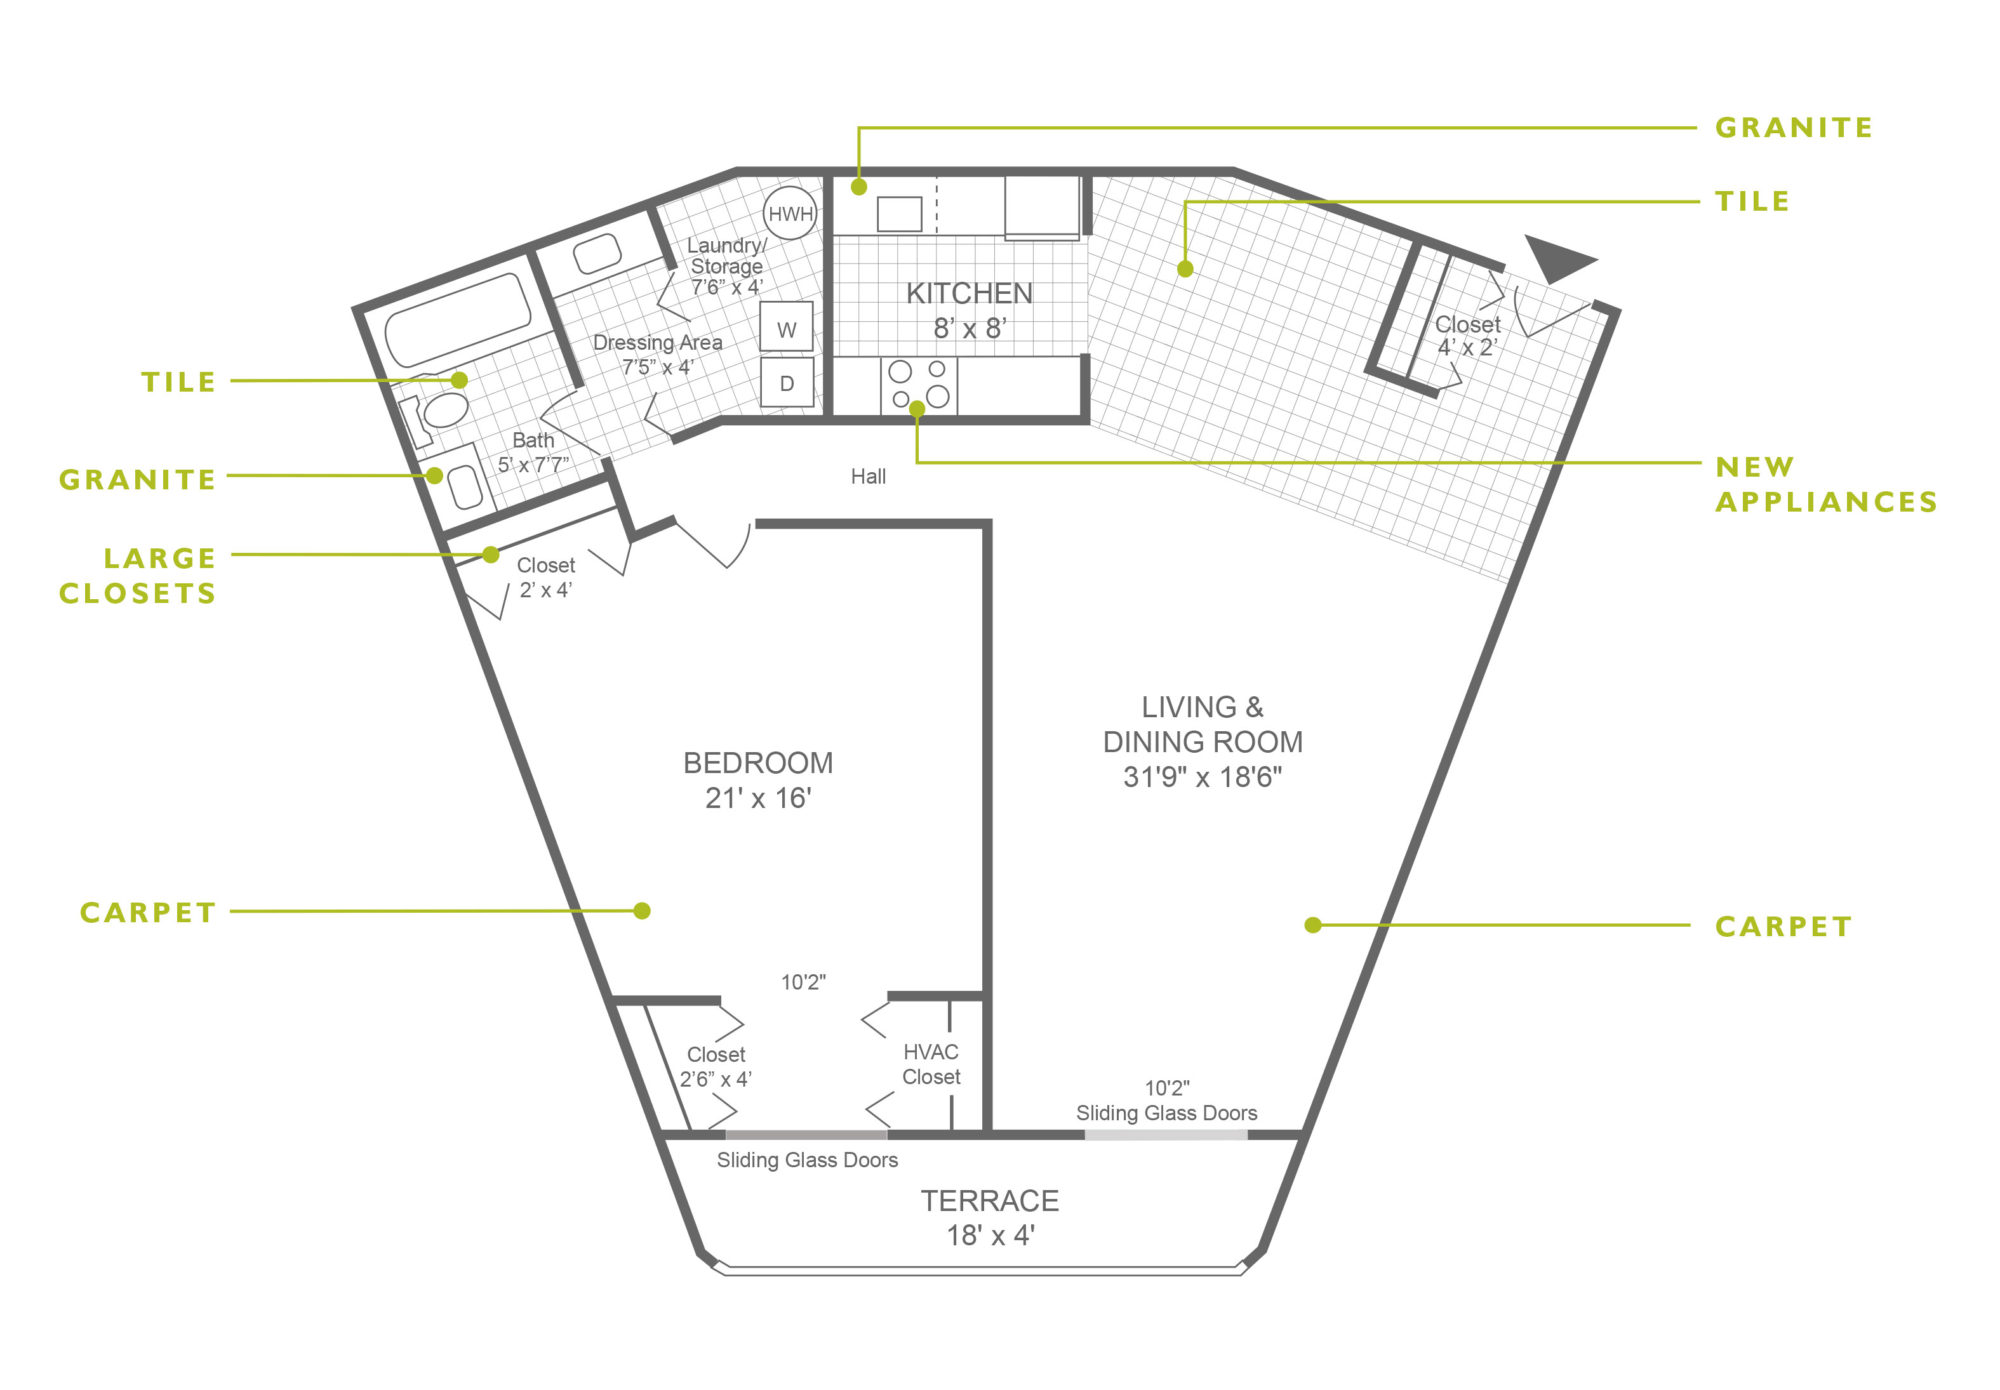 1-bedroom apartment in King of Prussia at Valley Forge Towers with 1,079 sq. ft.